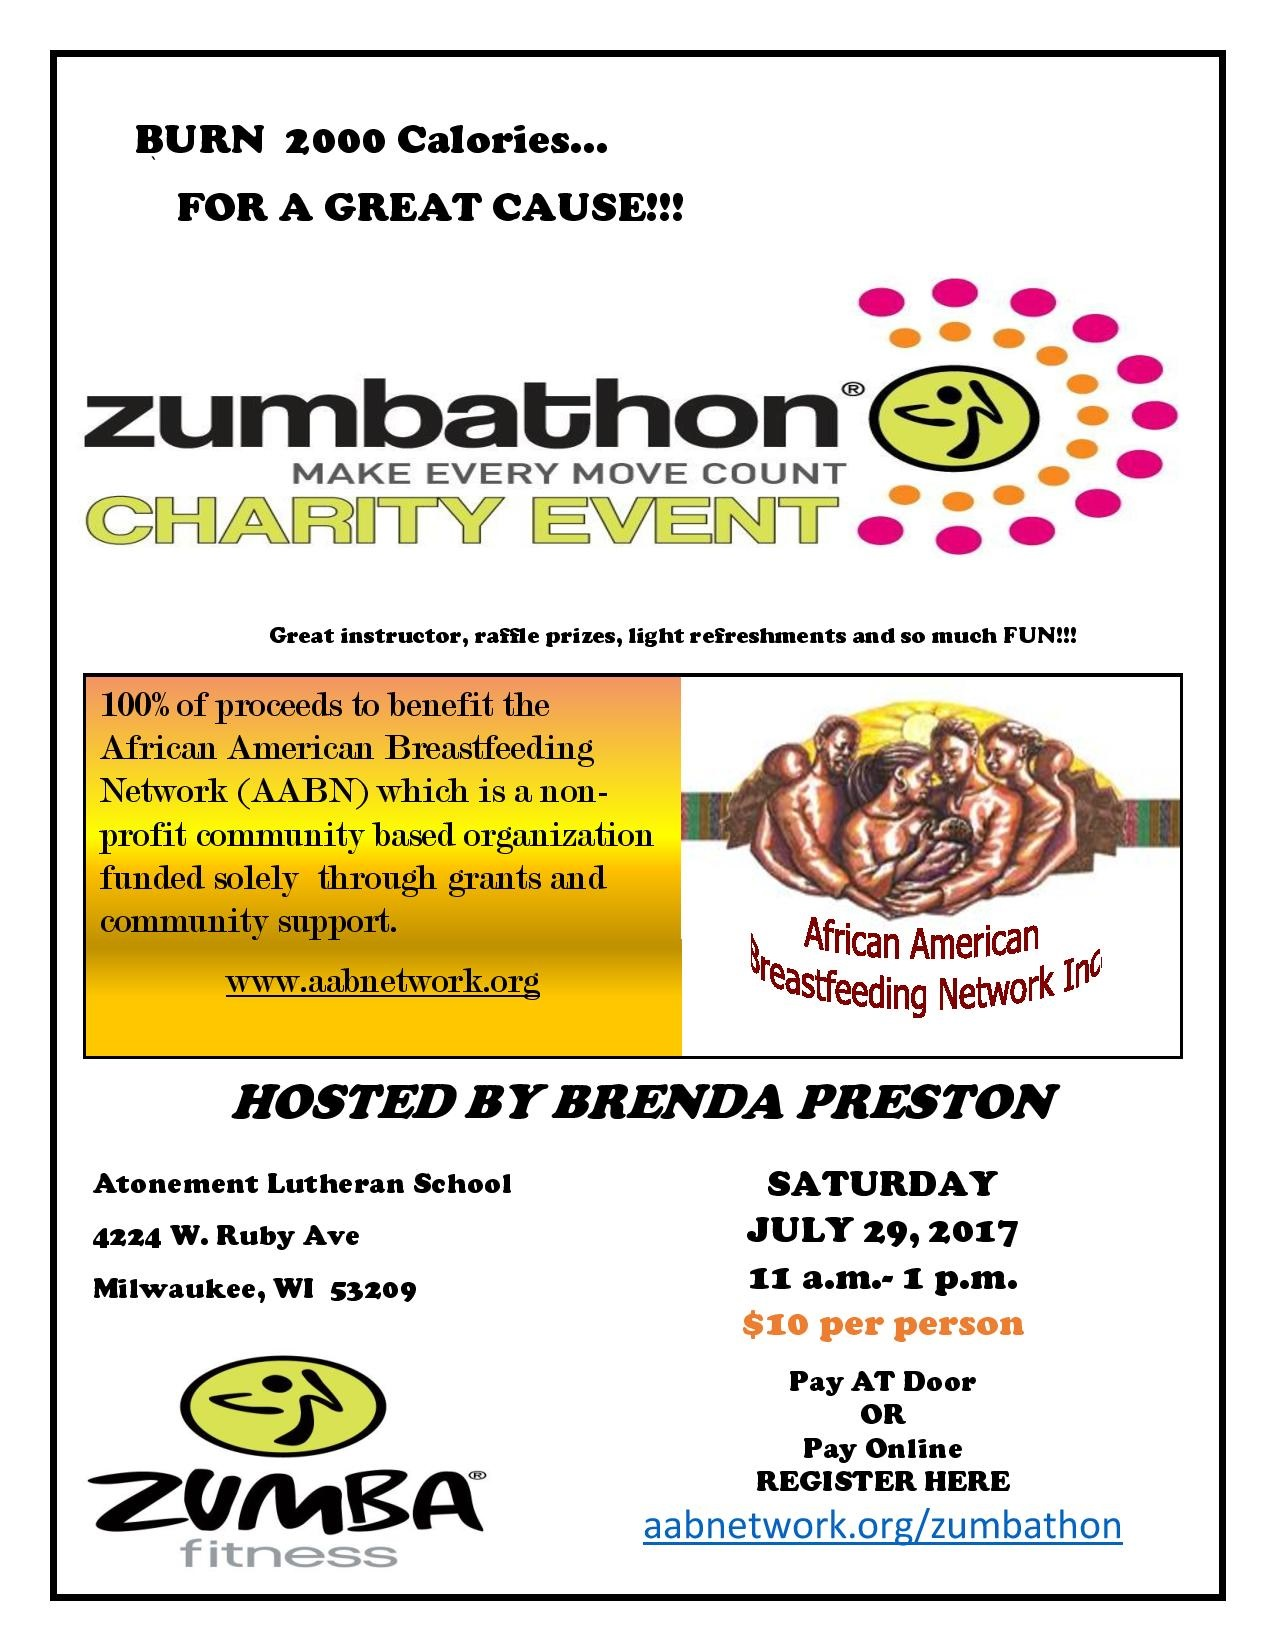 Come join us on Saturday July 29th for Zumbathon!!Please complete the following form to attend. -